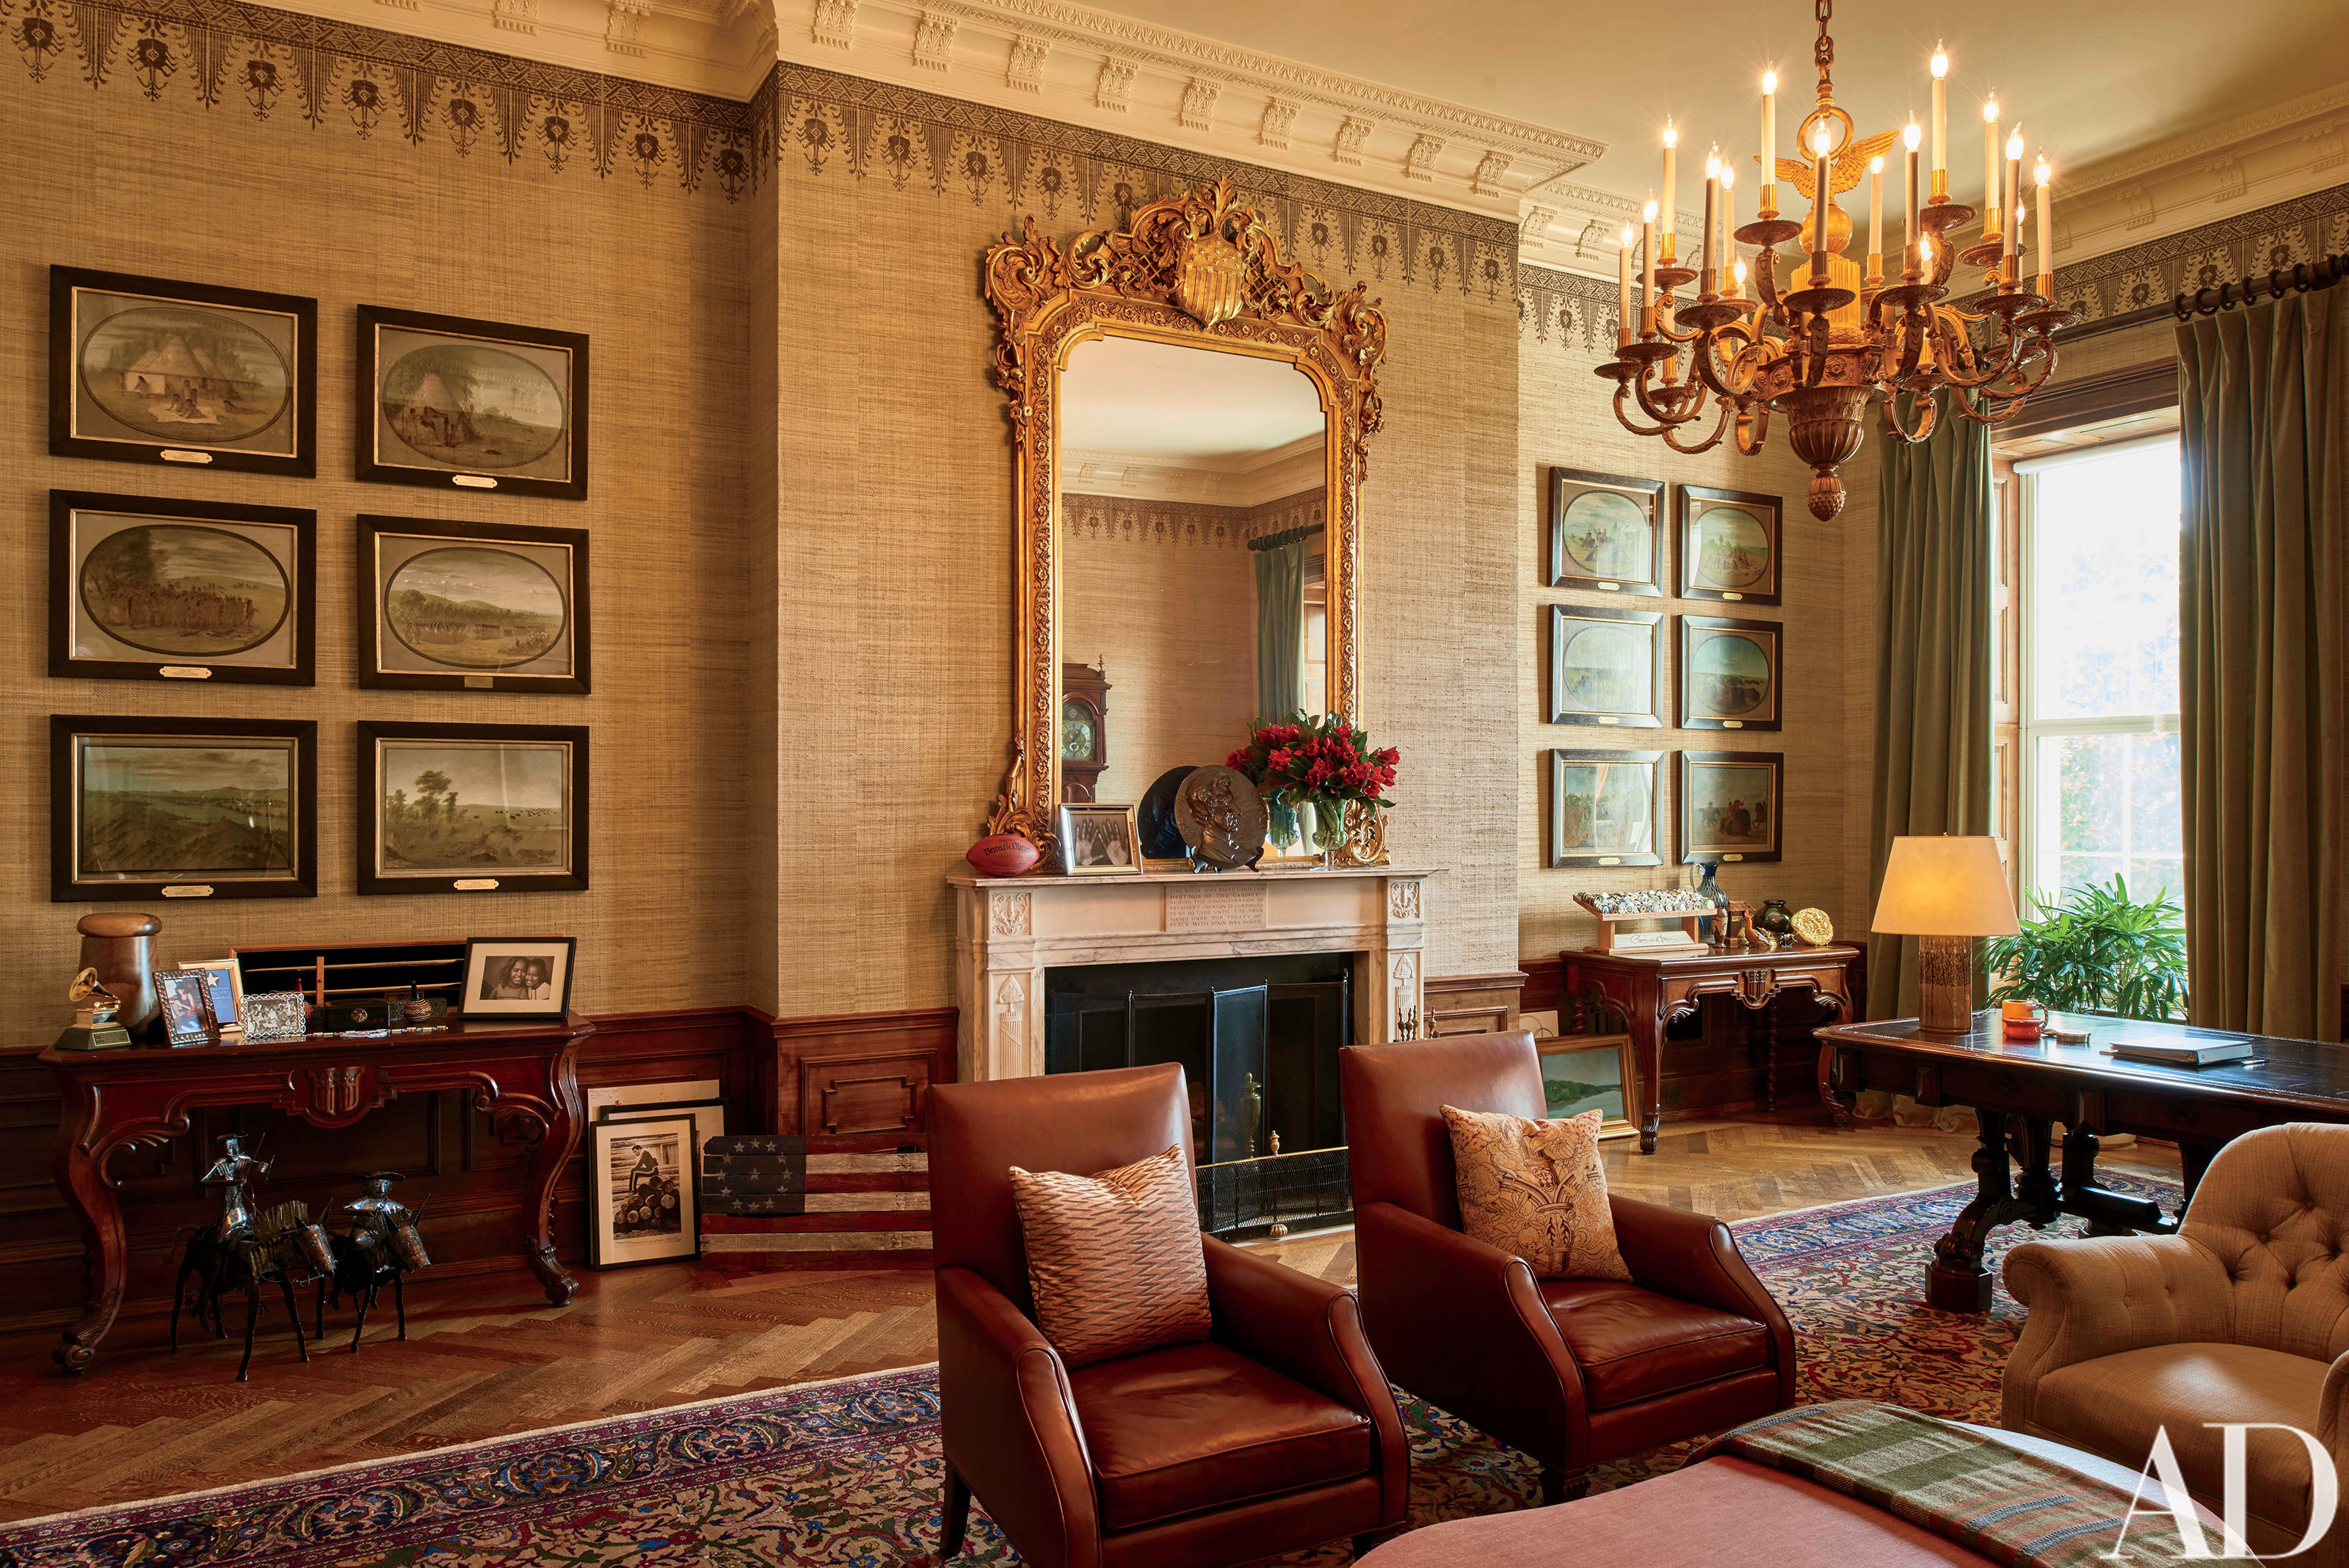 "This image provided by Architectural Digest shows The Treaty Room in the White House in Washington in August 2016. The Treaty Room is filled with memorabilia including one of President Barack Obama's two Grammy Awards, family photos, and a personalized football. It's also where Obama often retreats late at night. He uses the room's namesake table, which has been in the White House since 1869, as a desk. Obama likes to say the White House is the ""people's house."" The Architectural Digest photos are giving the public its first glimpse of private areas on the second floor of the White House that Obama, his wife, Michelle, daughters Malia and Sasha and family dogs Bo and Sunny have called home for nearly eight years.(Michael Mundy/Architectural Digest via AP)"